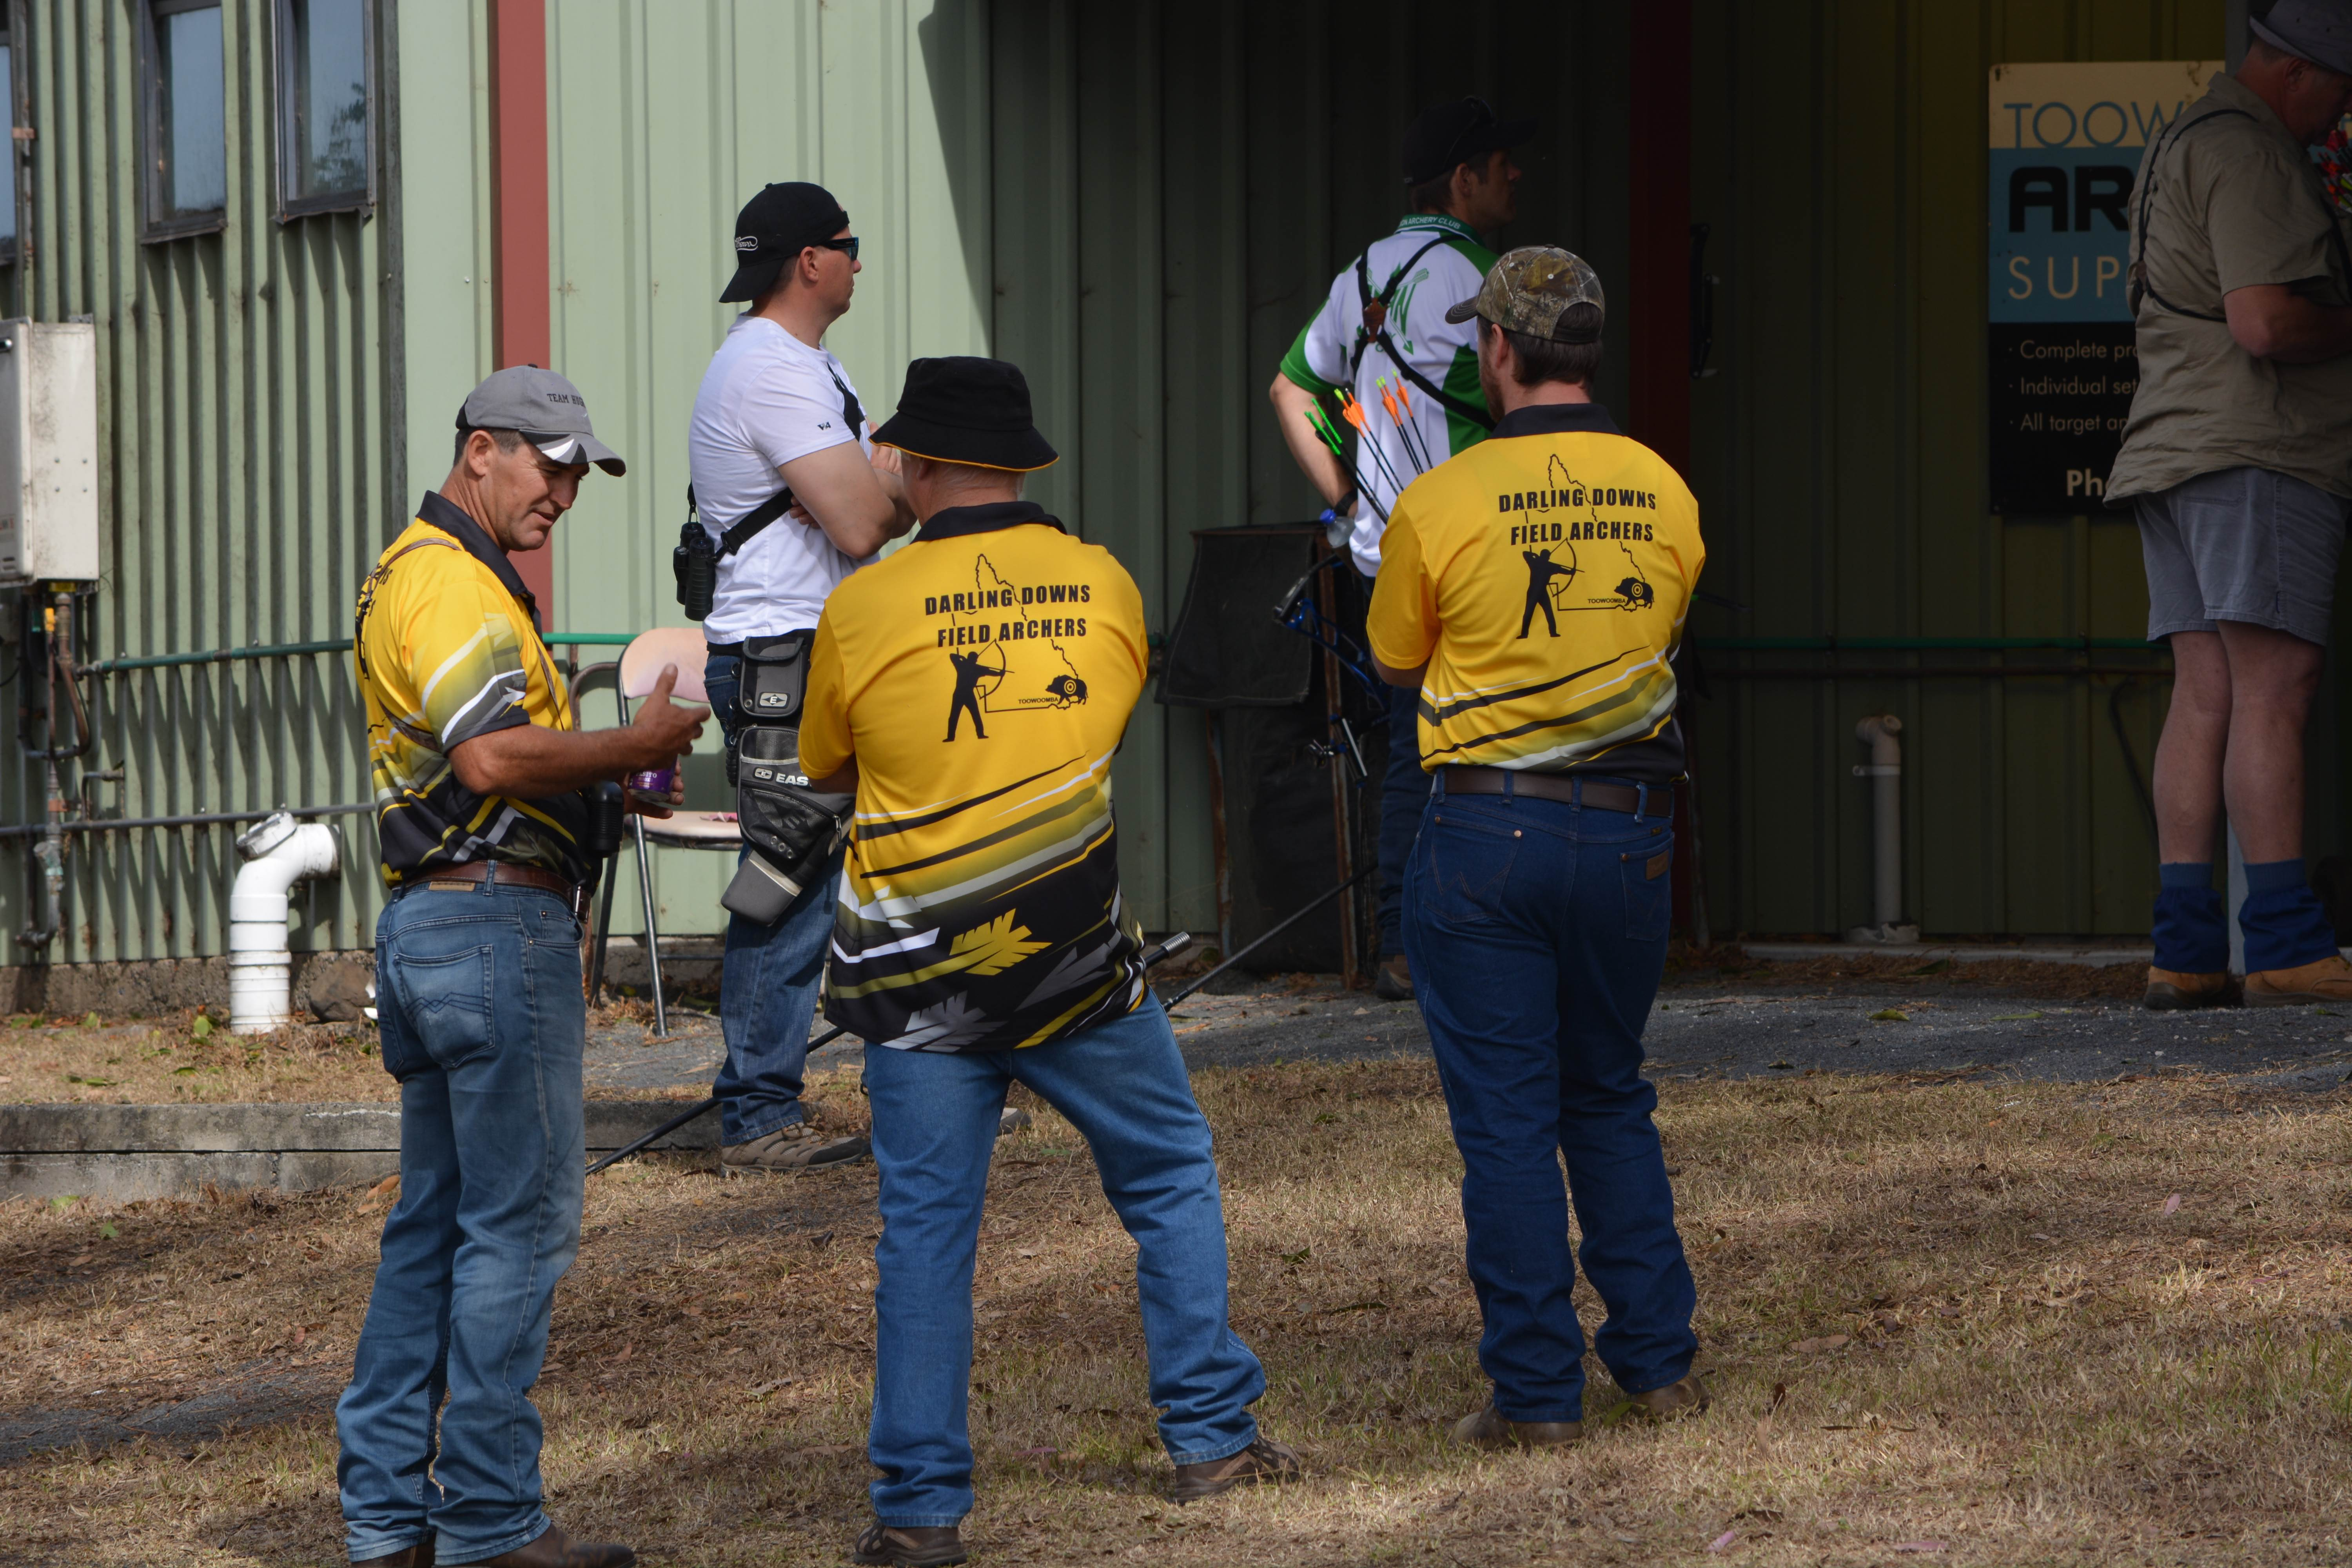 Darling Downs Field Archers - Home